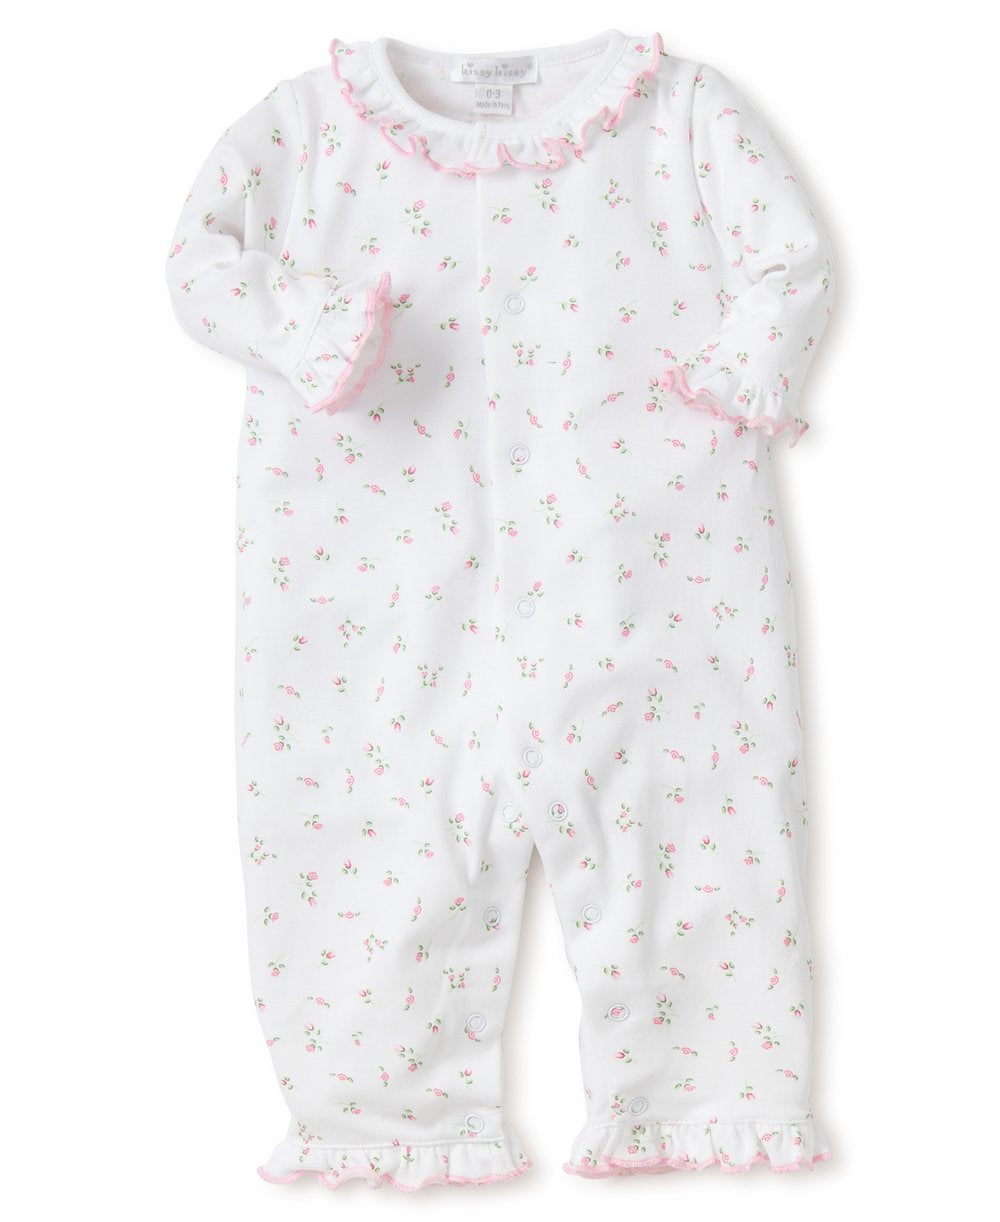 Garden Roses Playsuit - Posh Tots Children's Boutique